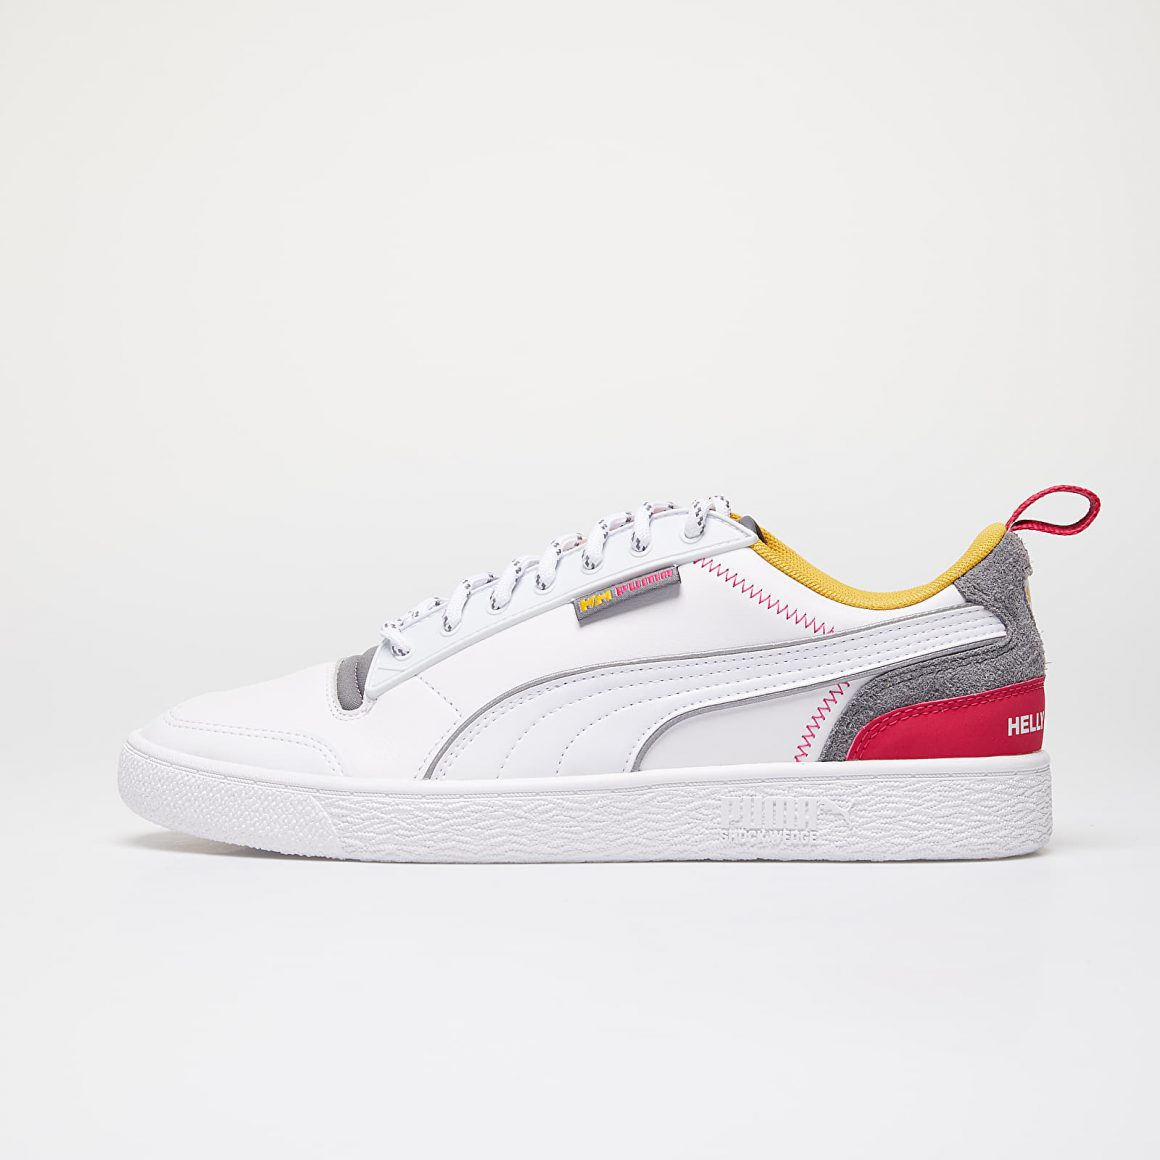 PUMA Ralph Sampson x HELLY HANSEN